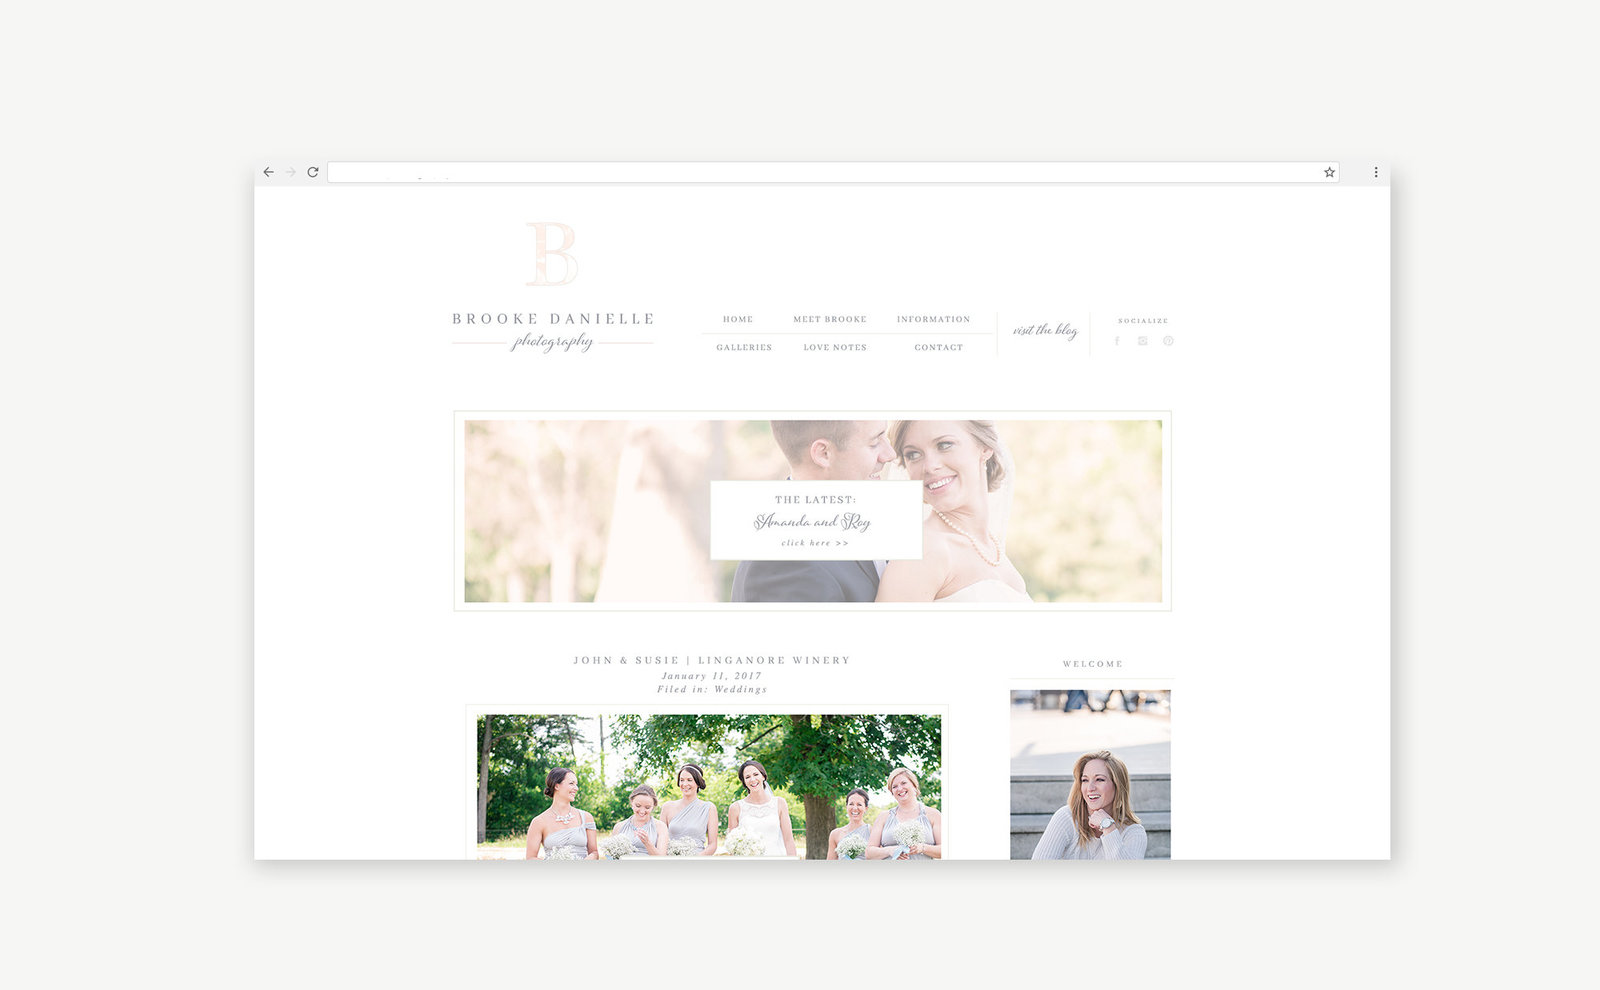 branding-for-photographers-web-design-brooke-danielle-blog